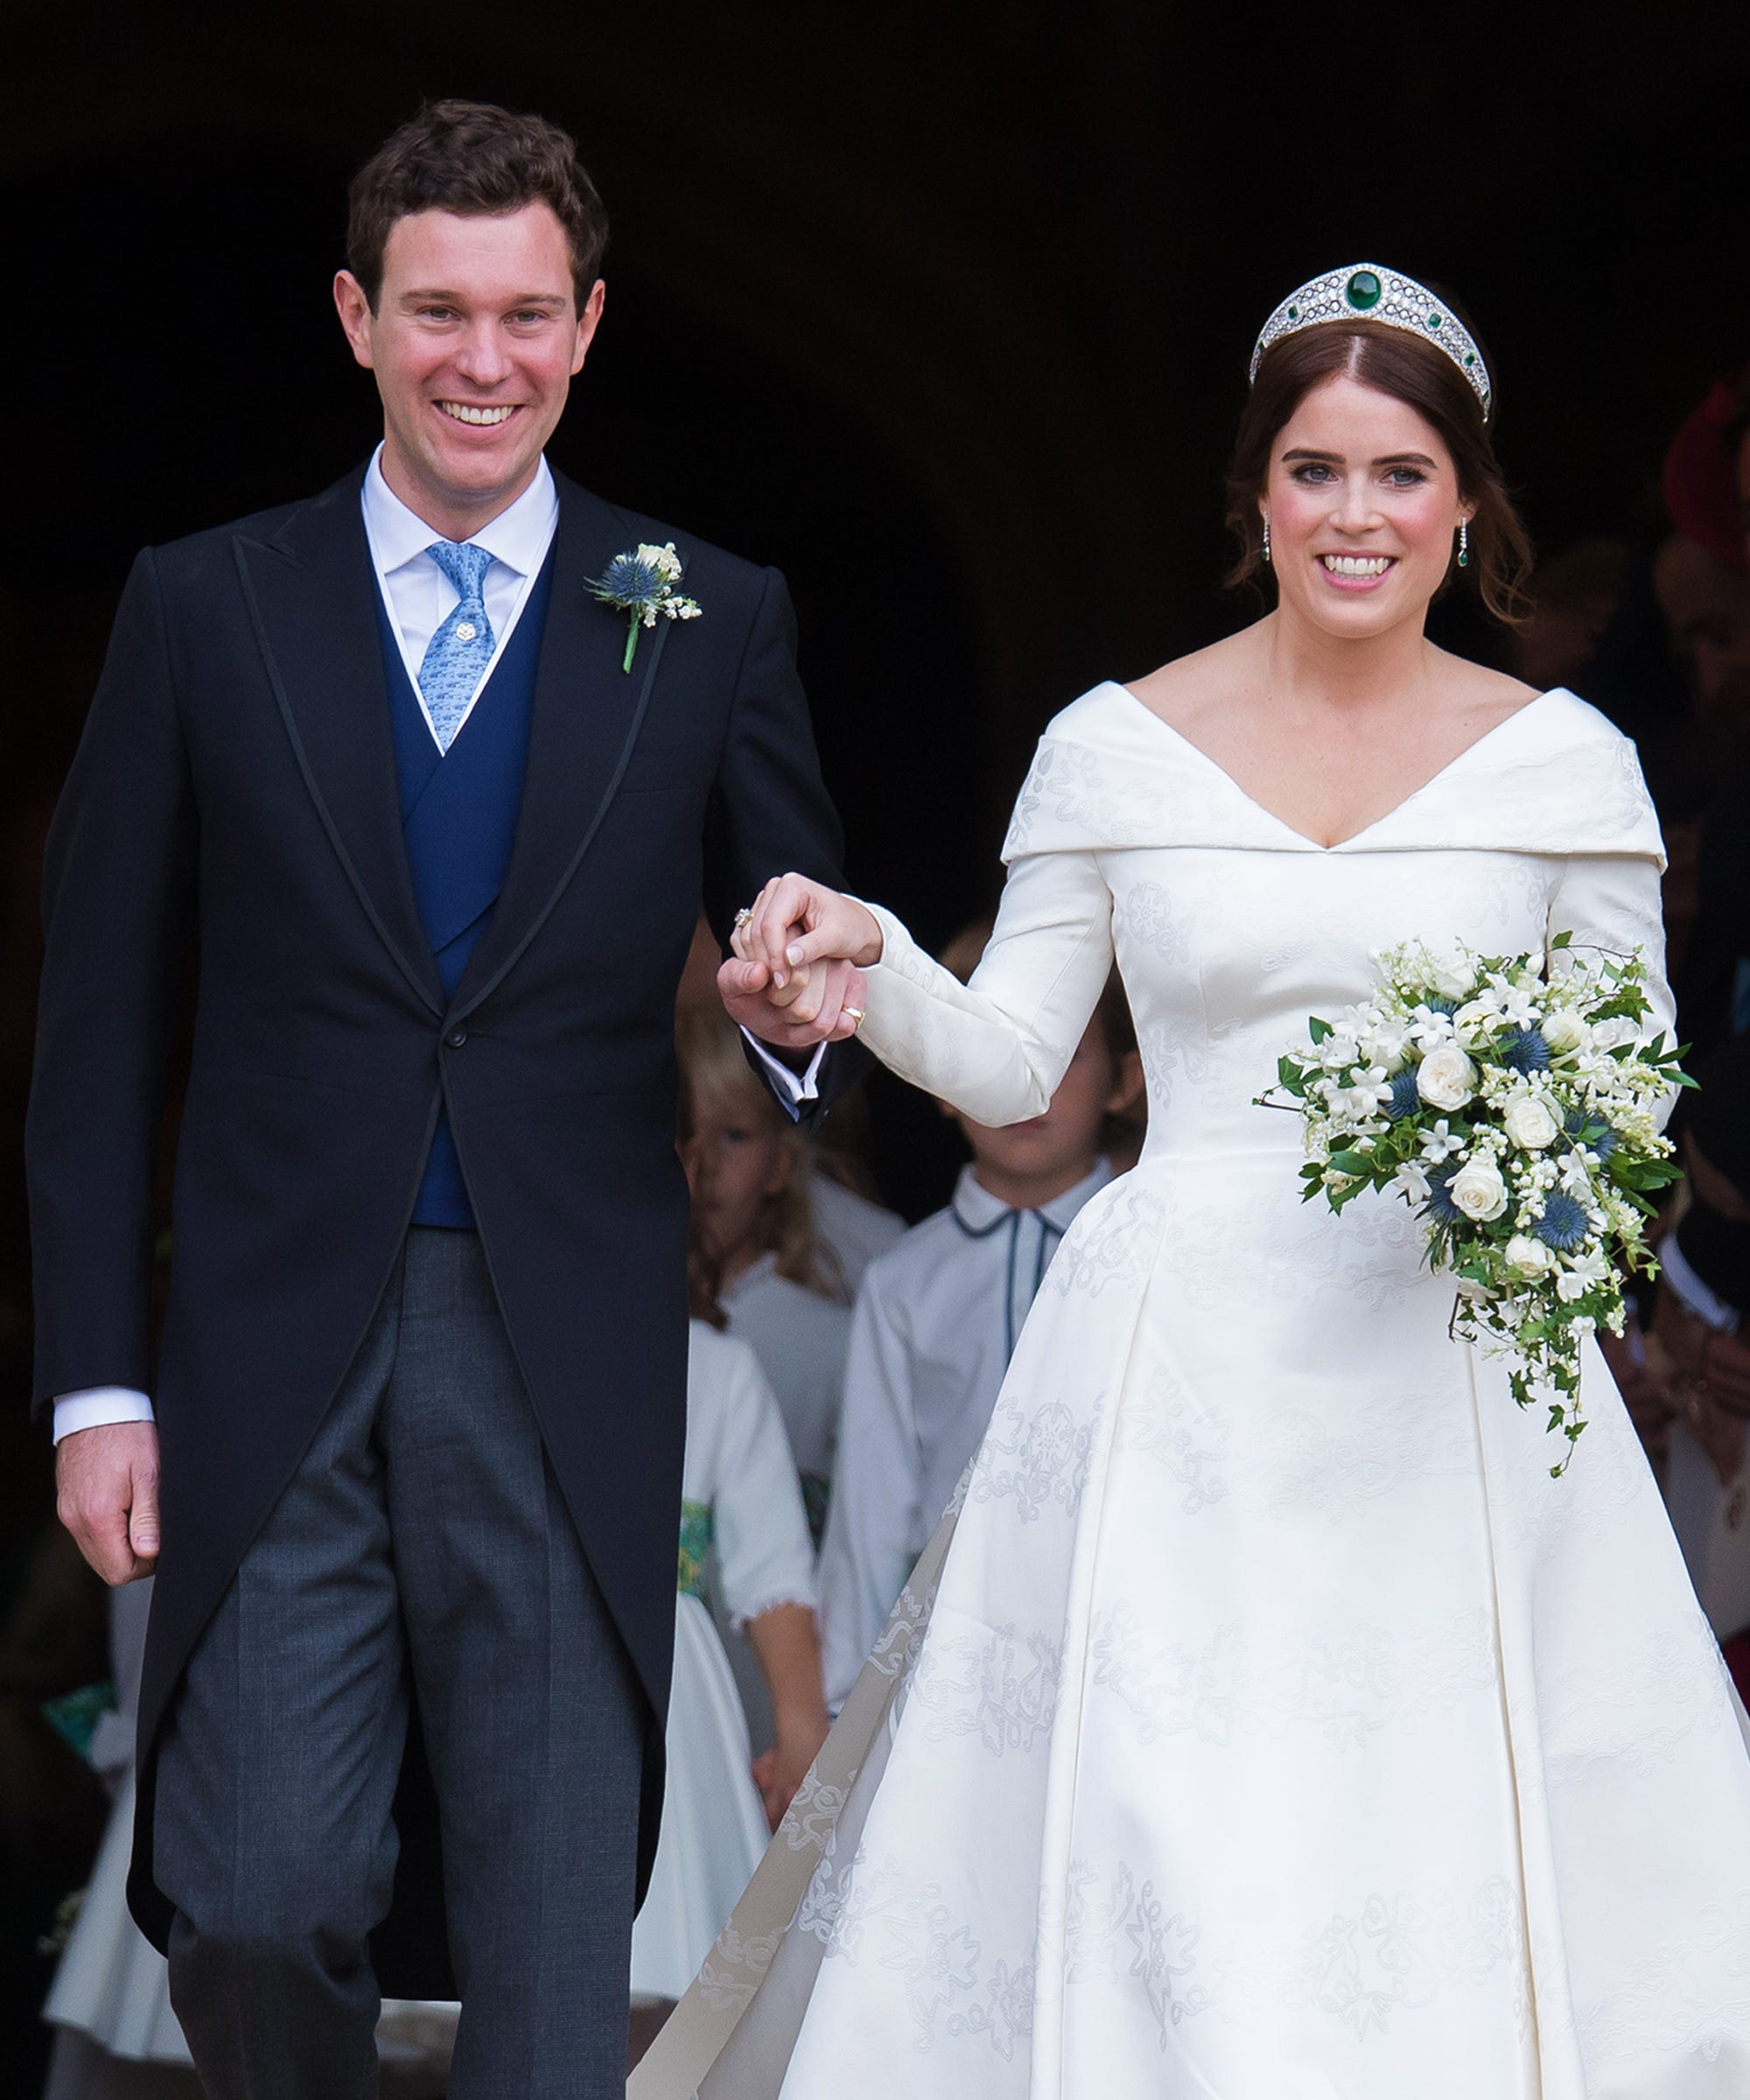 How British Wedding Traditions Differ From American